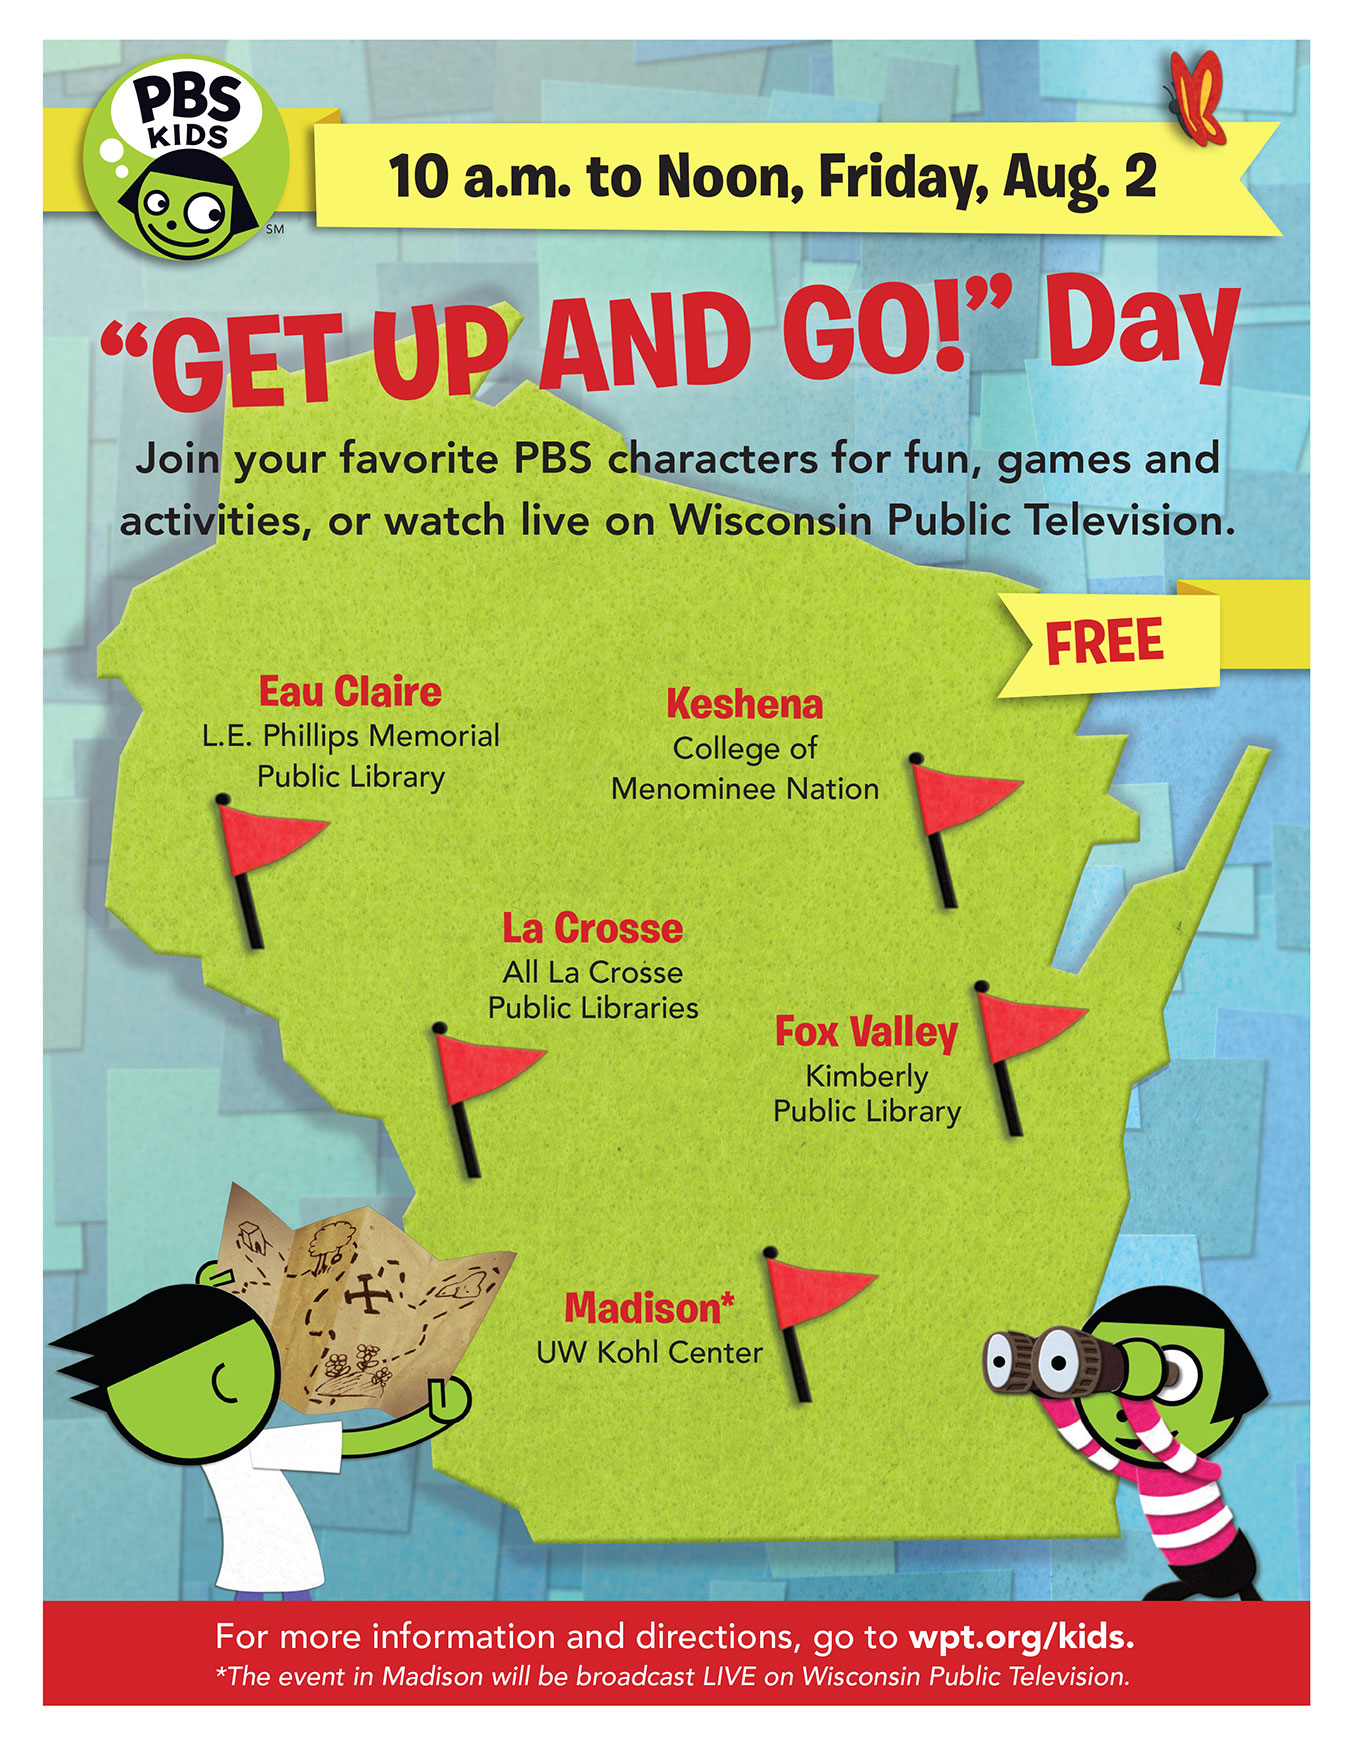 Get Up and Go Archives - Wisconsin Public Television